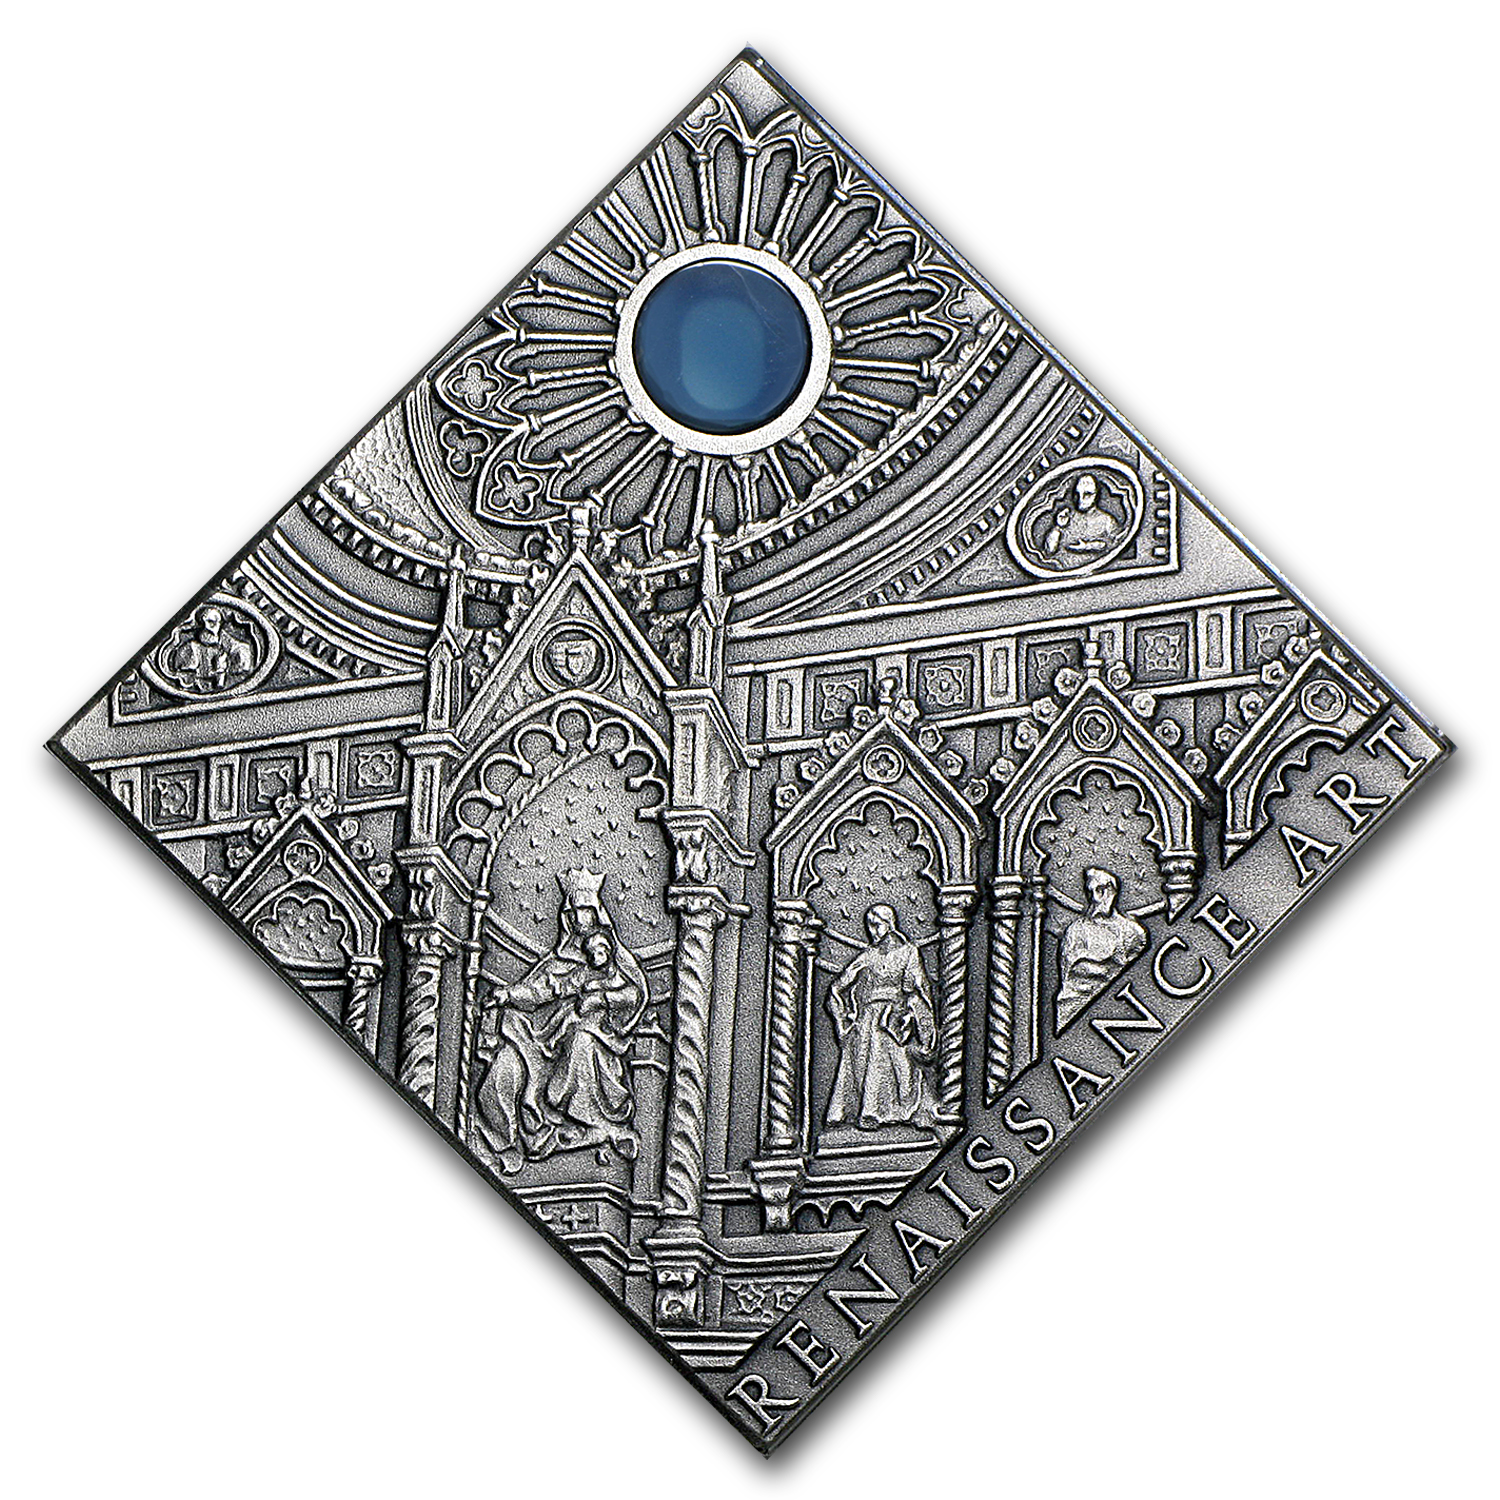 2014 Niue Antique Silver Art That Changed the World Renaissance